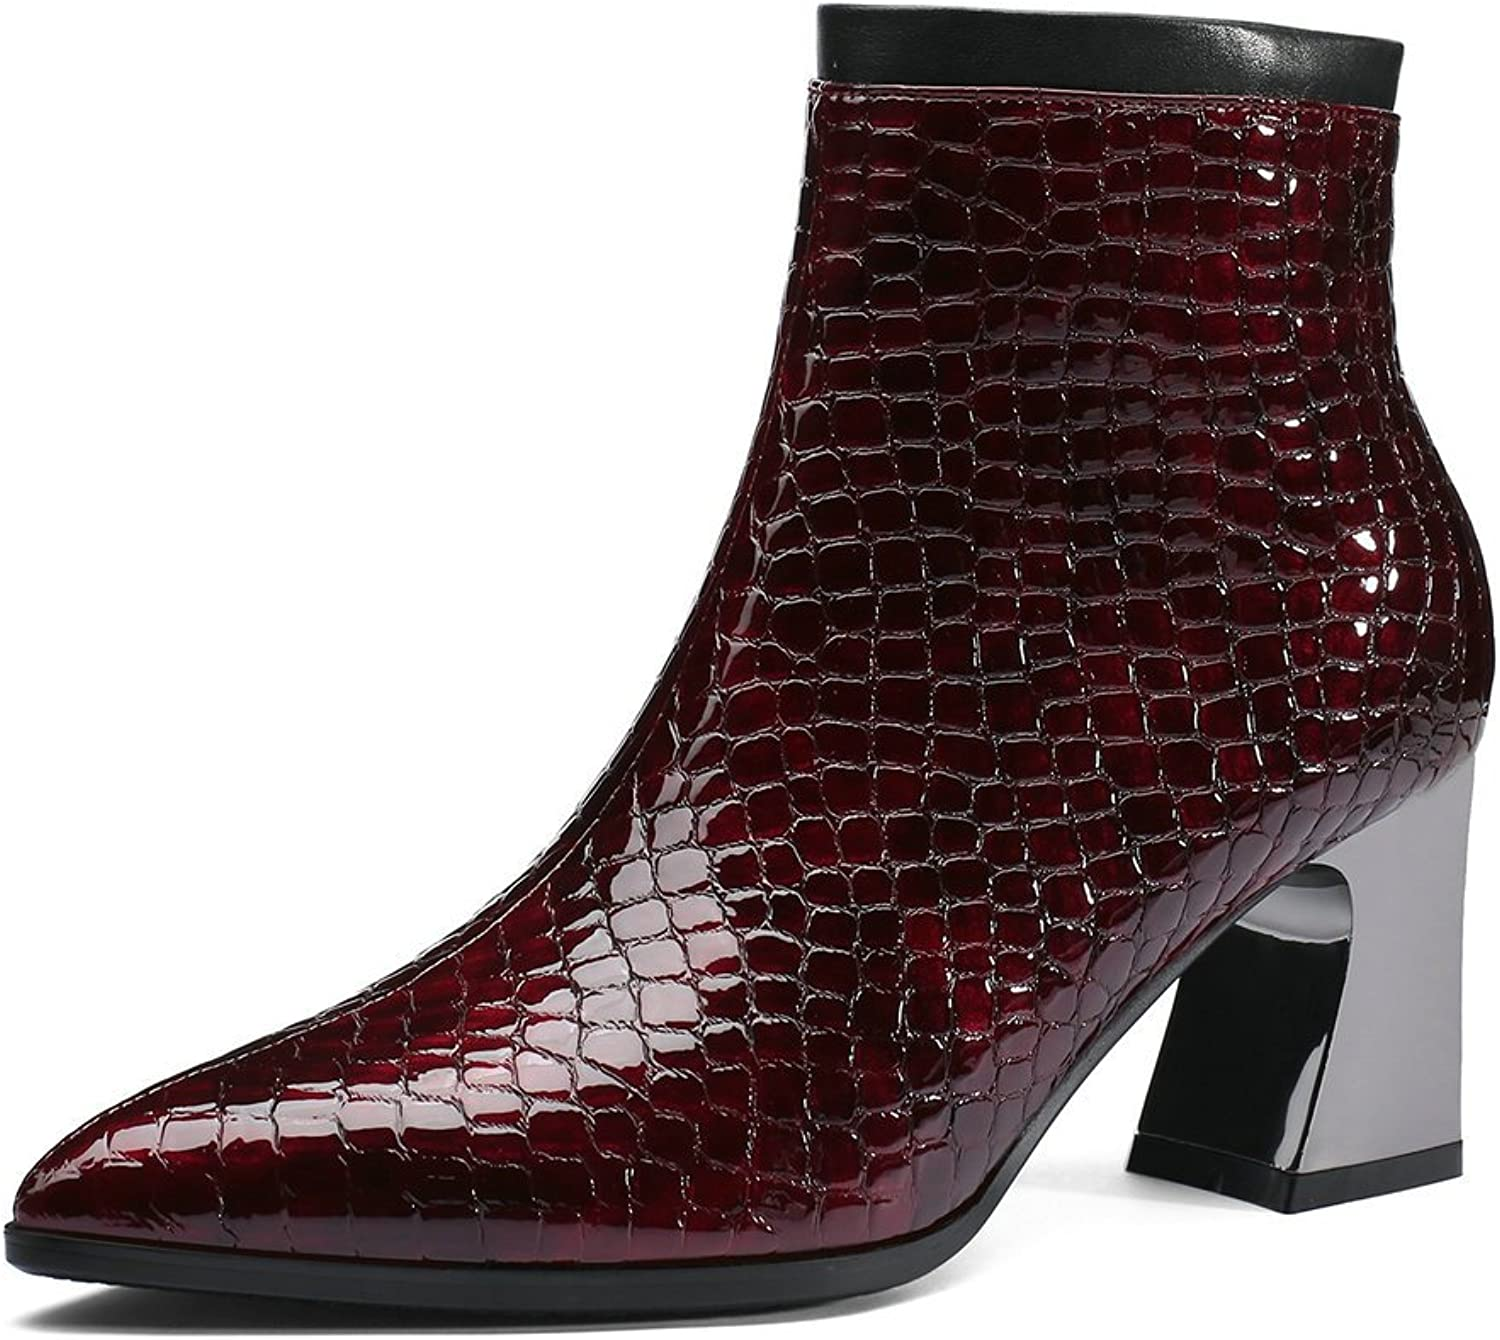 AnMengXinLing Fashion Ankle Boots Women Block High Heel Platform Patent Leather Pointed Toe Side Zip Cowboy Booties